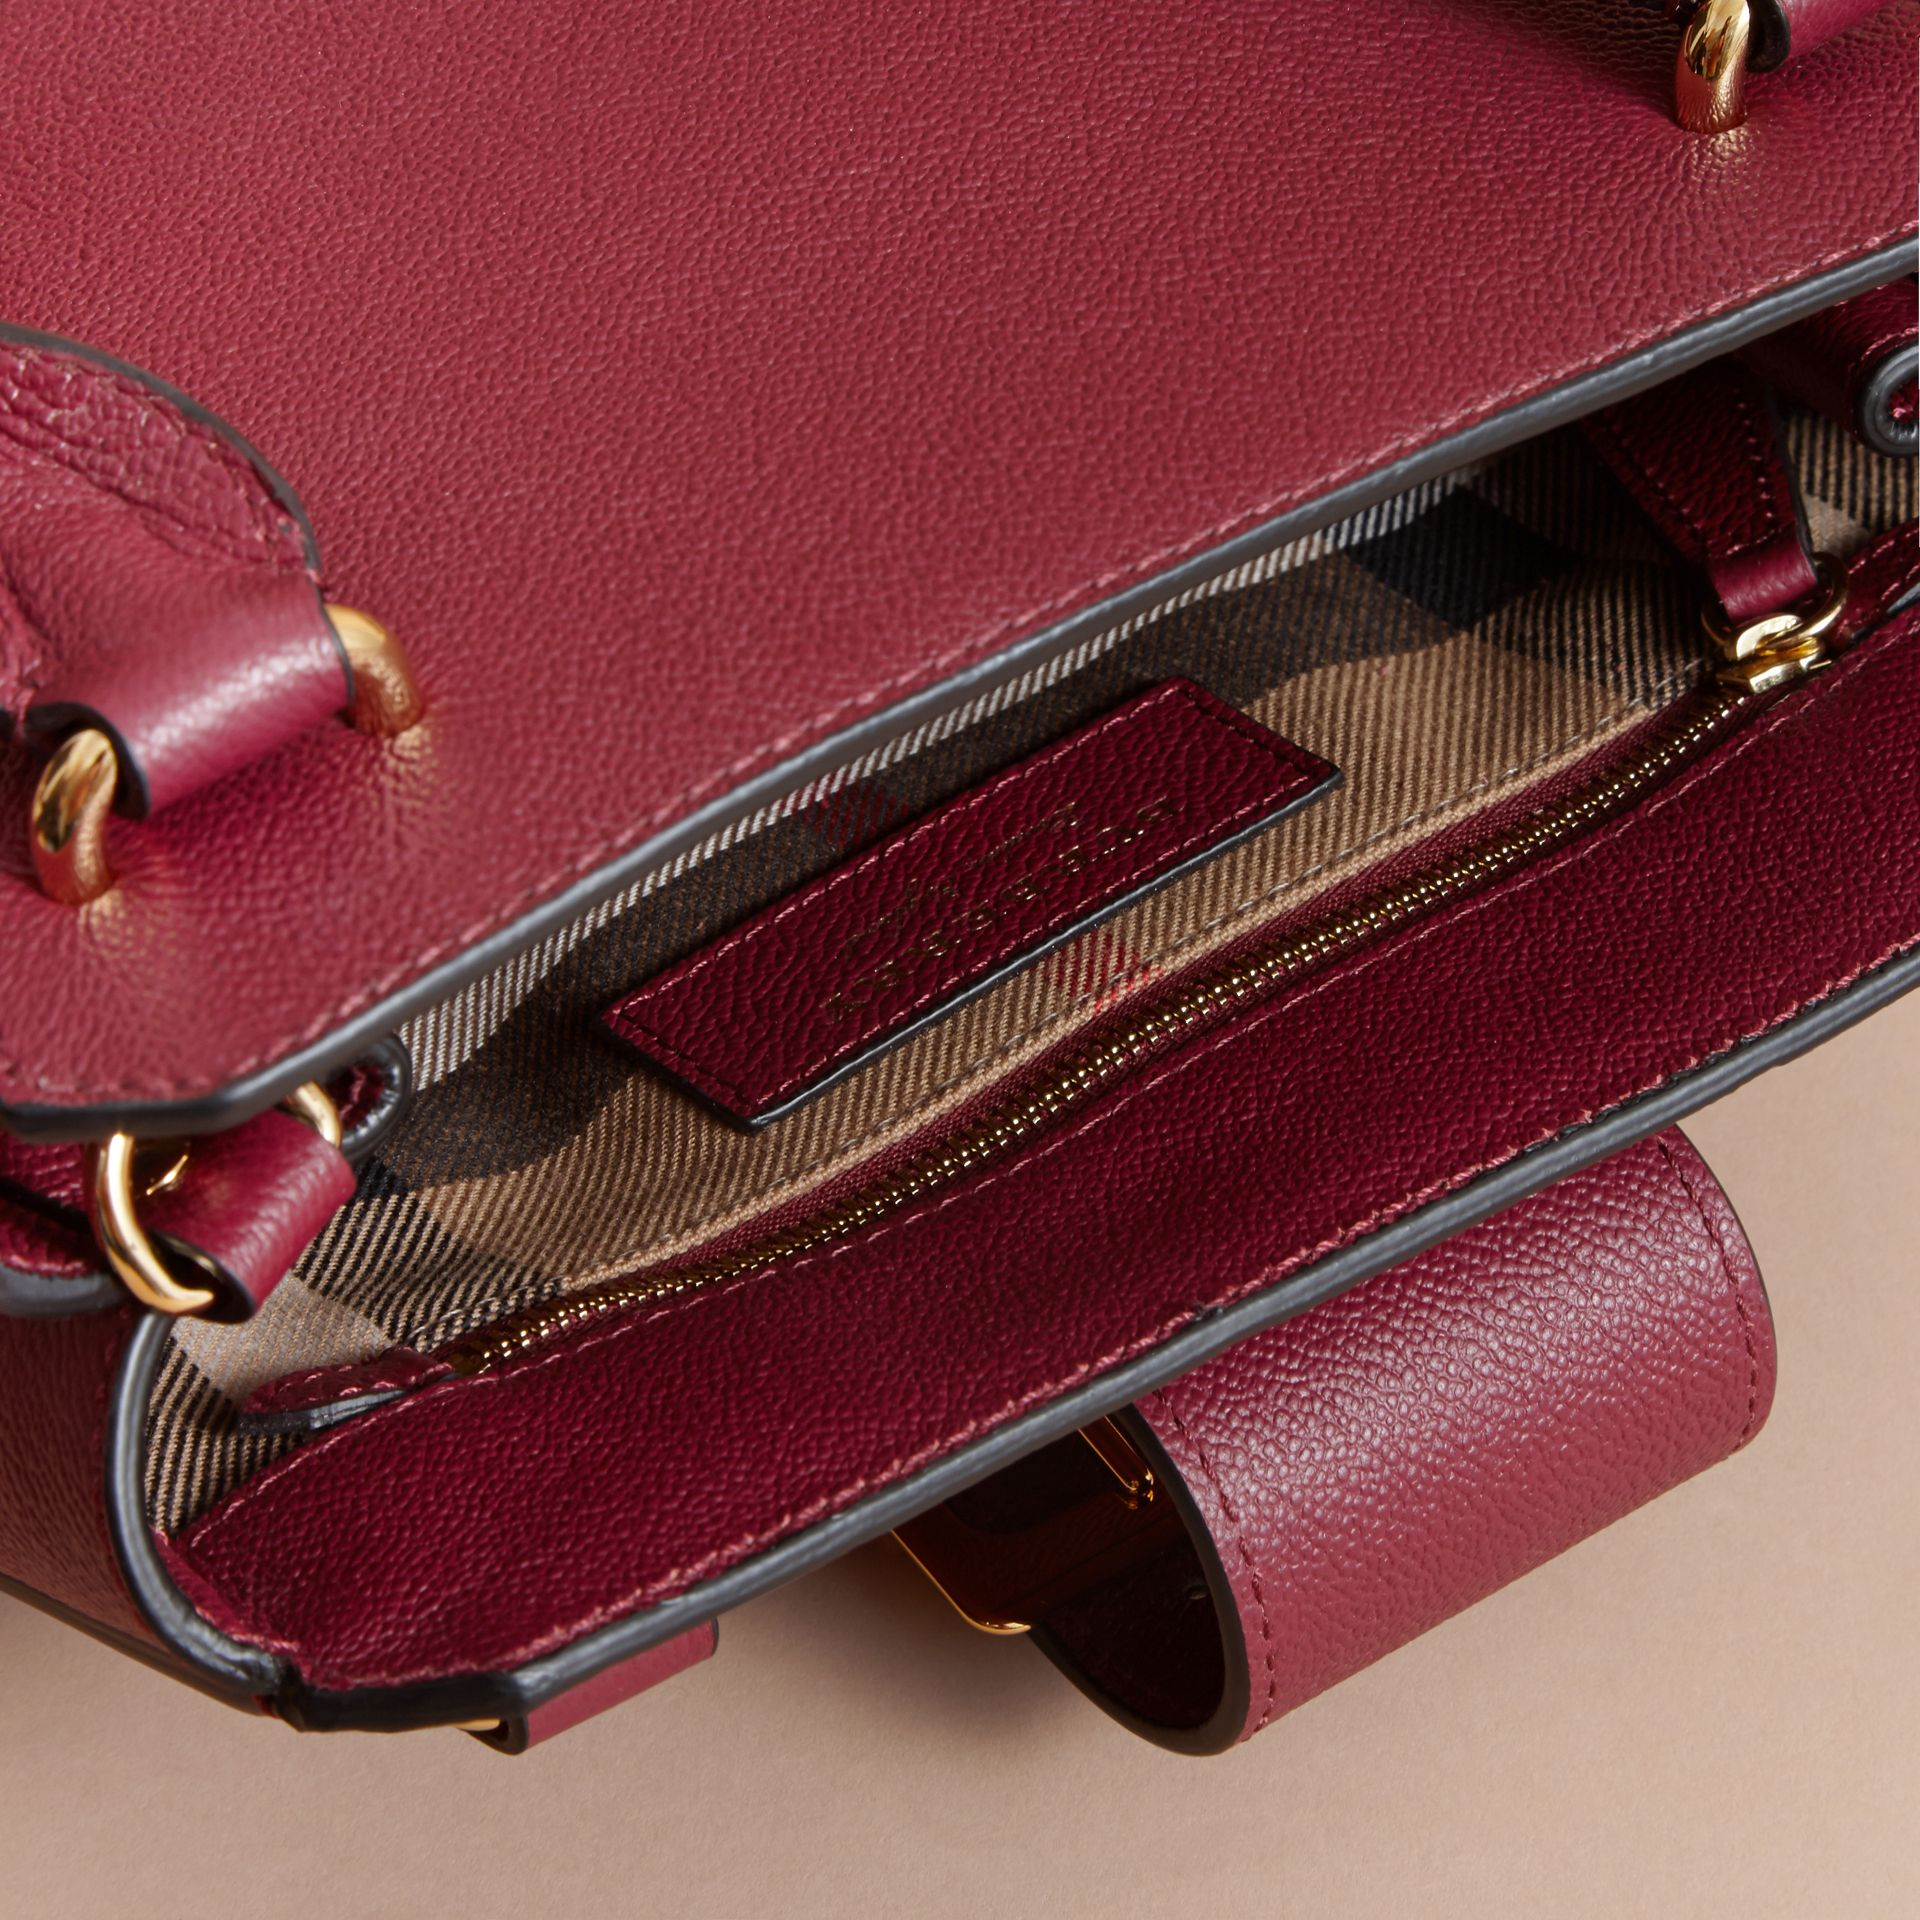 Dark plum The Small Buckle Tote in Grainy Leather Dark Plum - gallery image 6